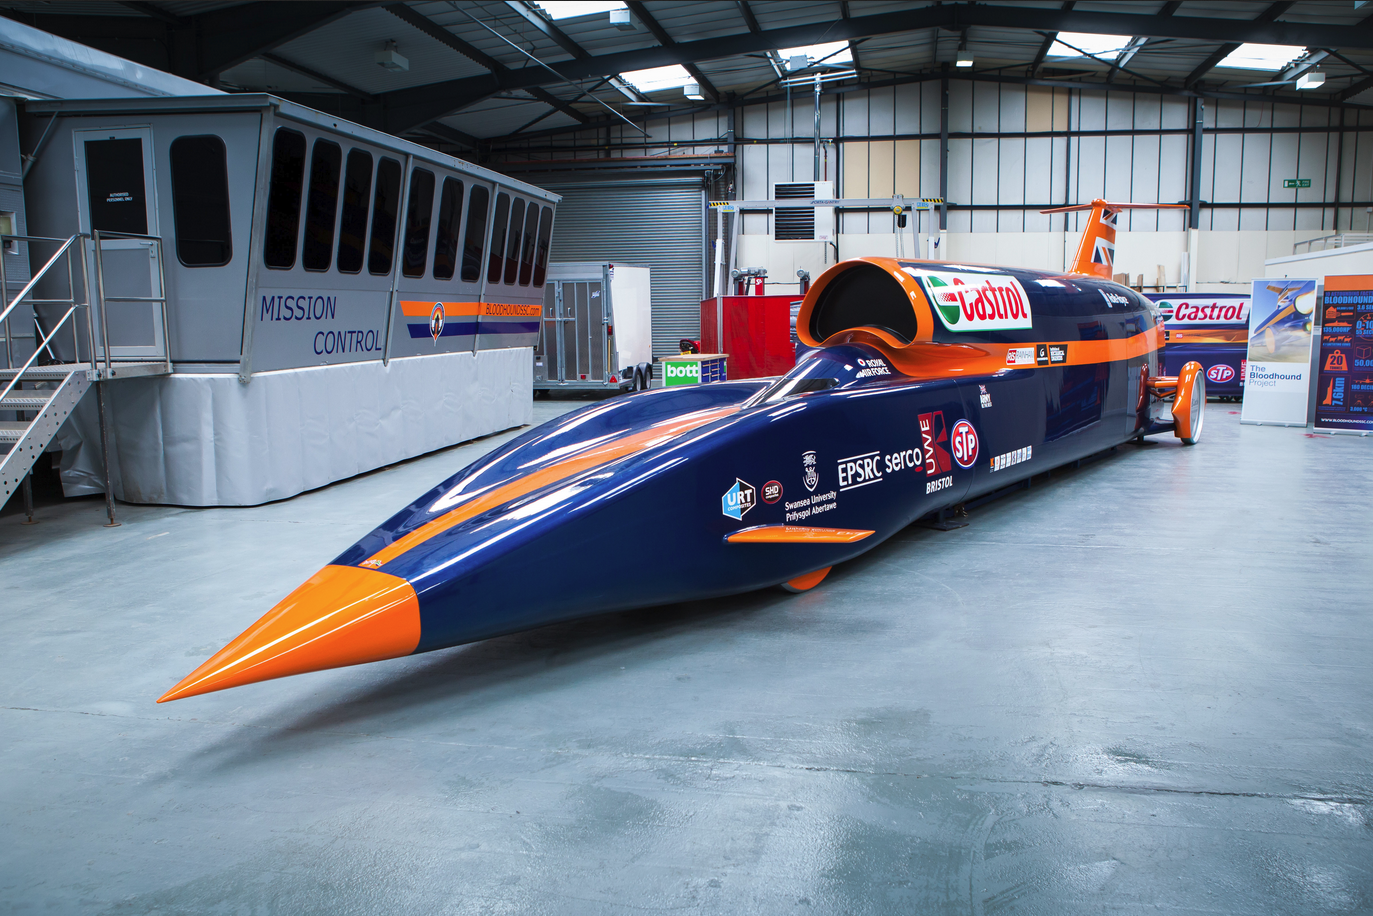 bloodhound ssc objectif 1609 km h auto. Black Bedroom Furniture Sets. Home Design Ideas